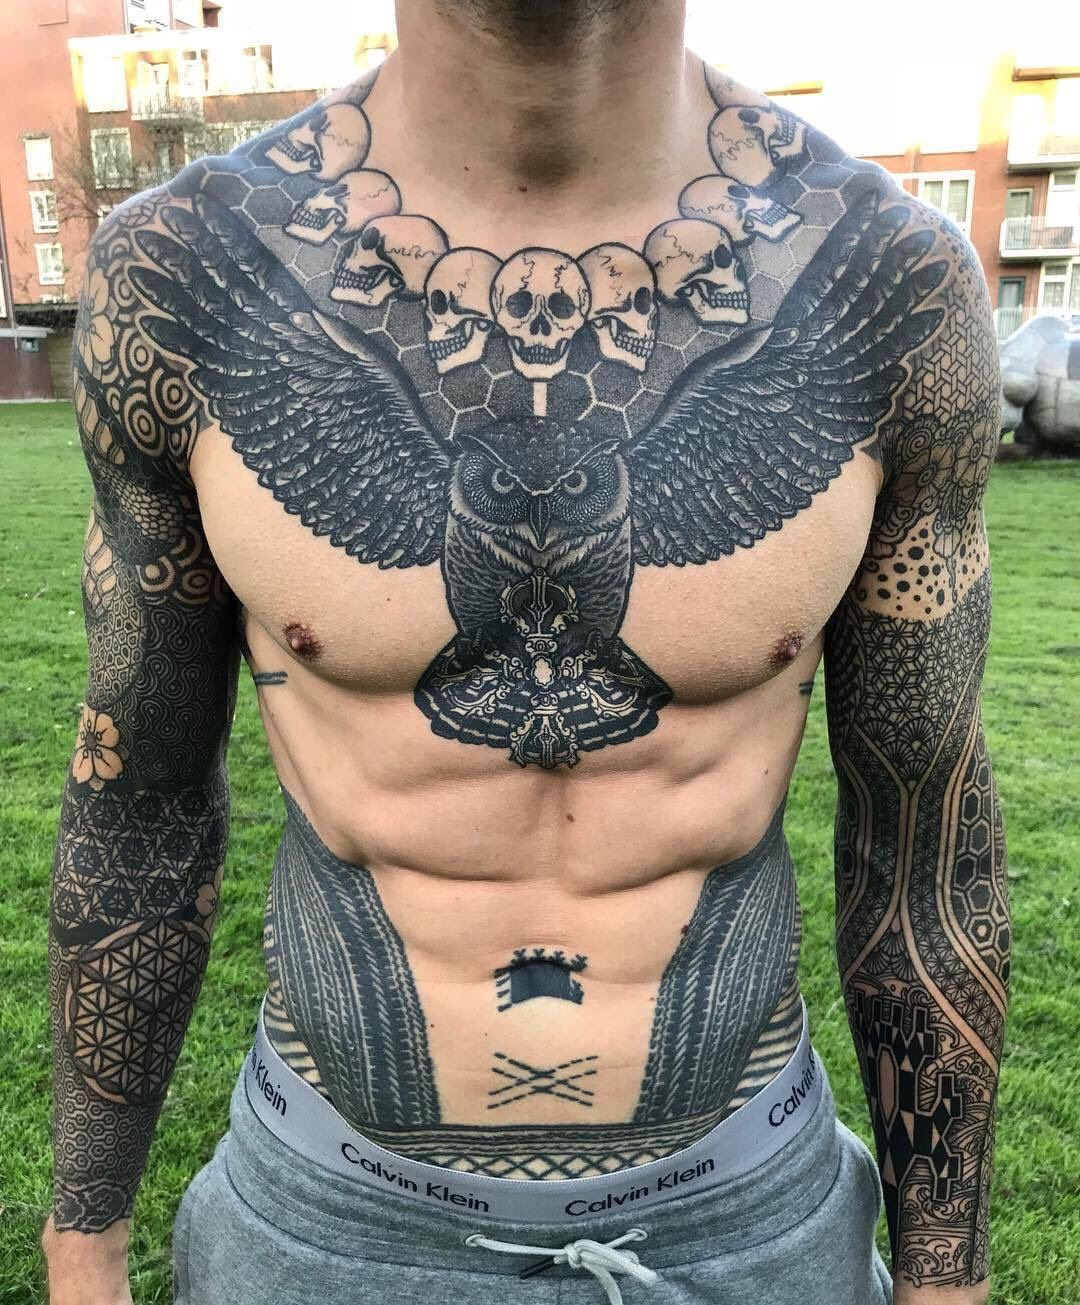 Too Much Symmetry. It Seems Tattoos Look Better With A Bit